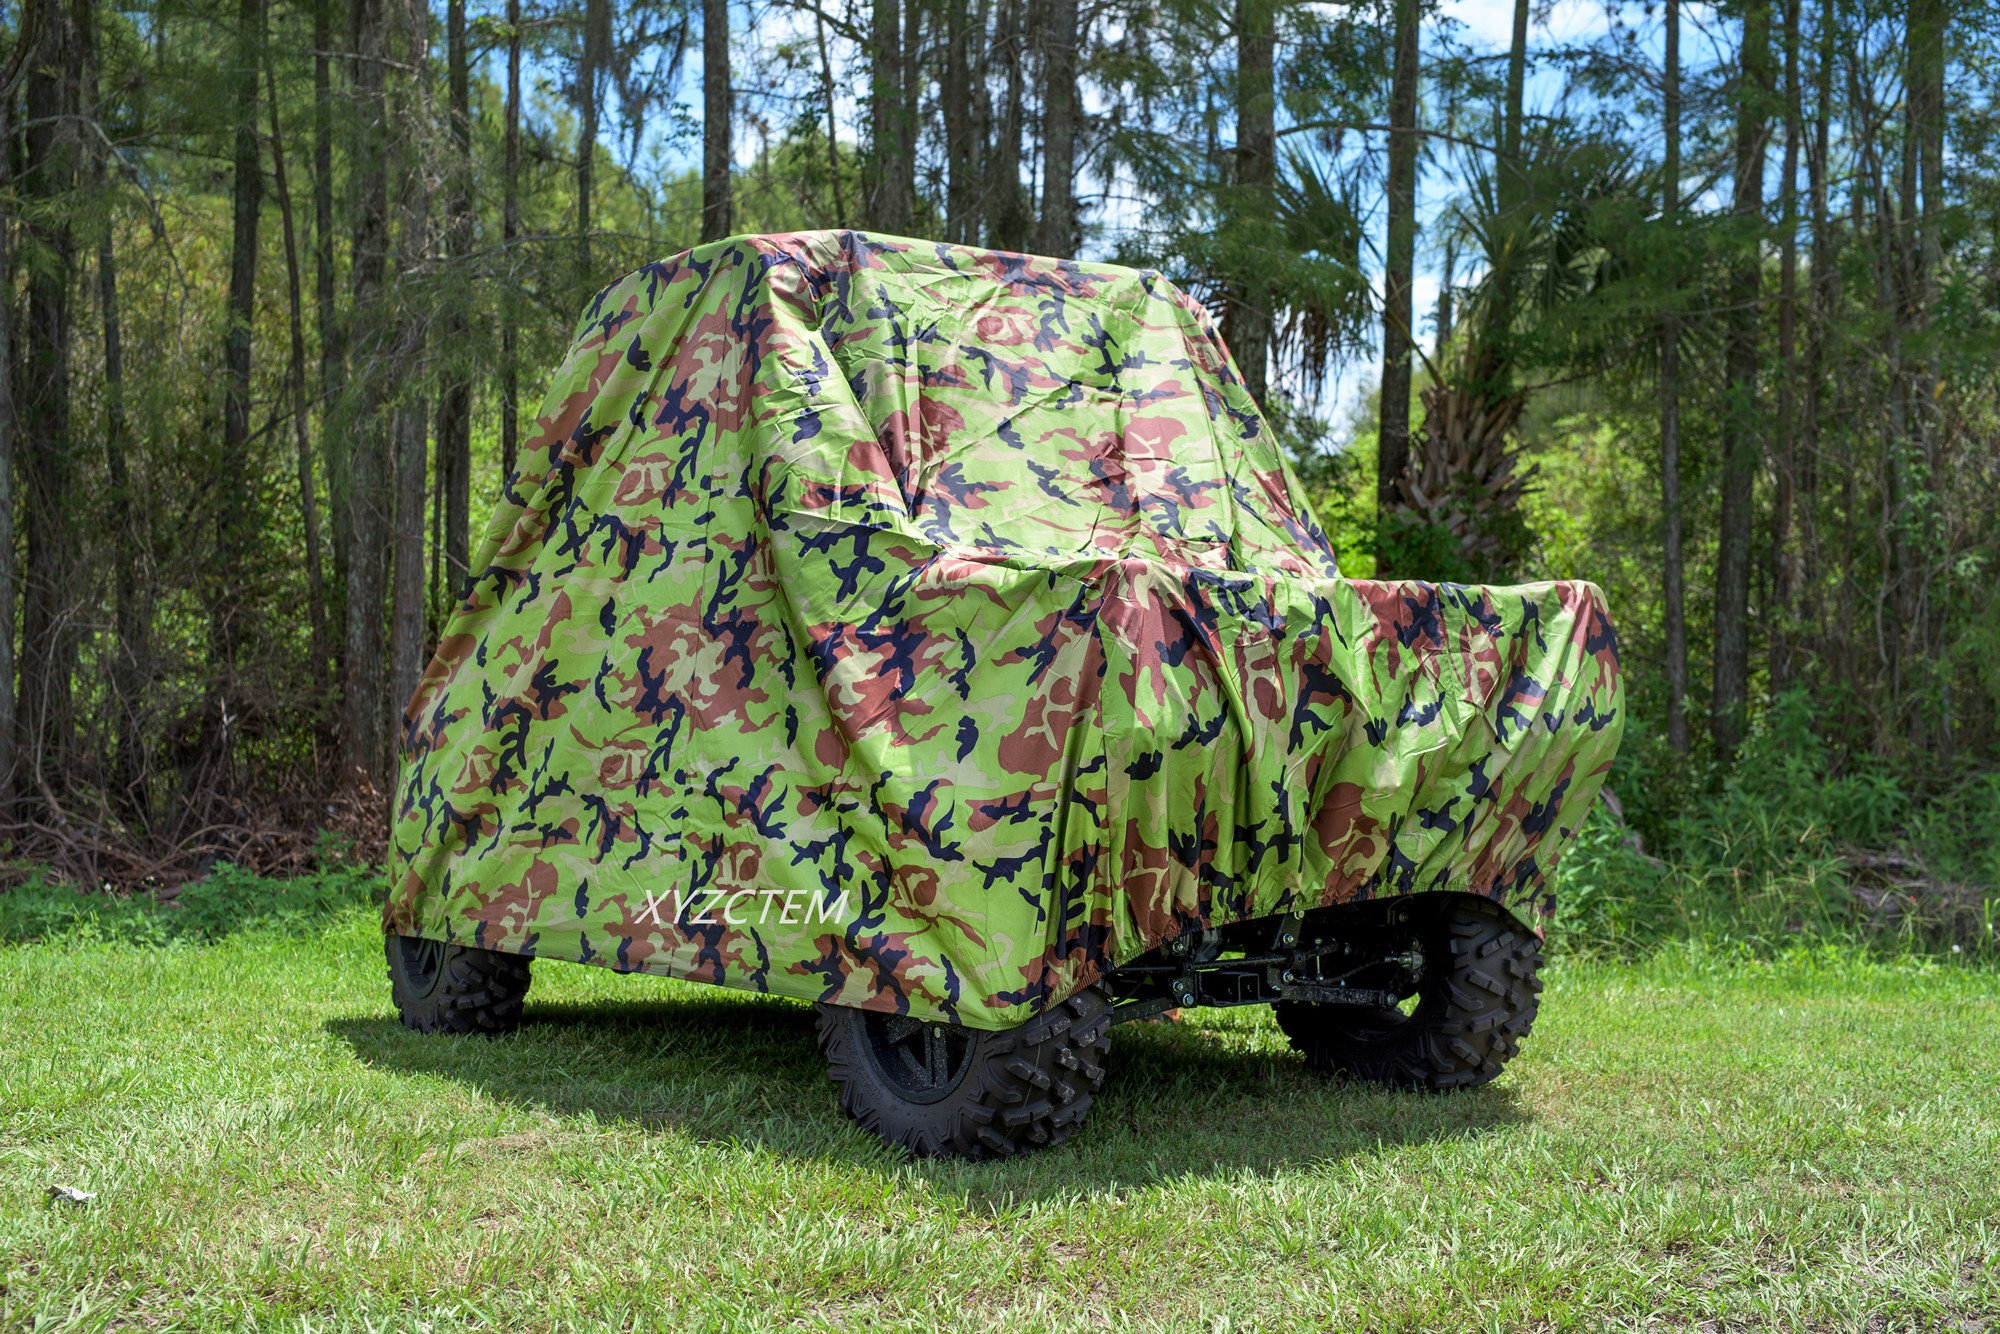 XYZCTEM UTV Cover with Heavy Duty Oxford Waterproof Material, 114.17'' x 59.06'' x 74.80'' (290 150 190cm) Included Storage Bag. Protects UTV From Rain, Hail, Dust, Snow, Sleet, and Sun (Camo) by XYZCTEM (Image #6)